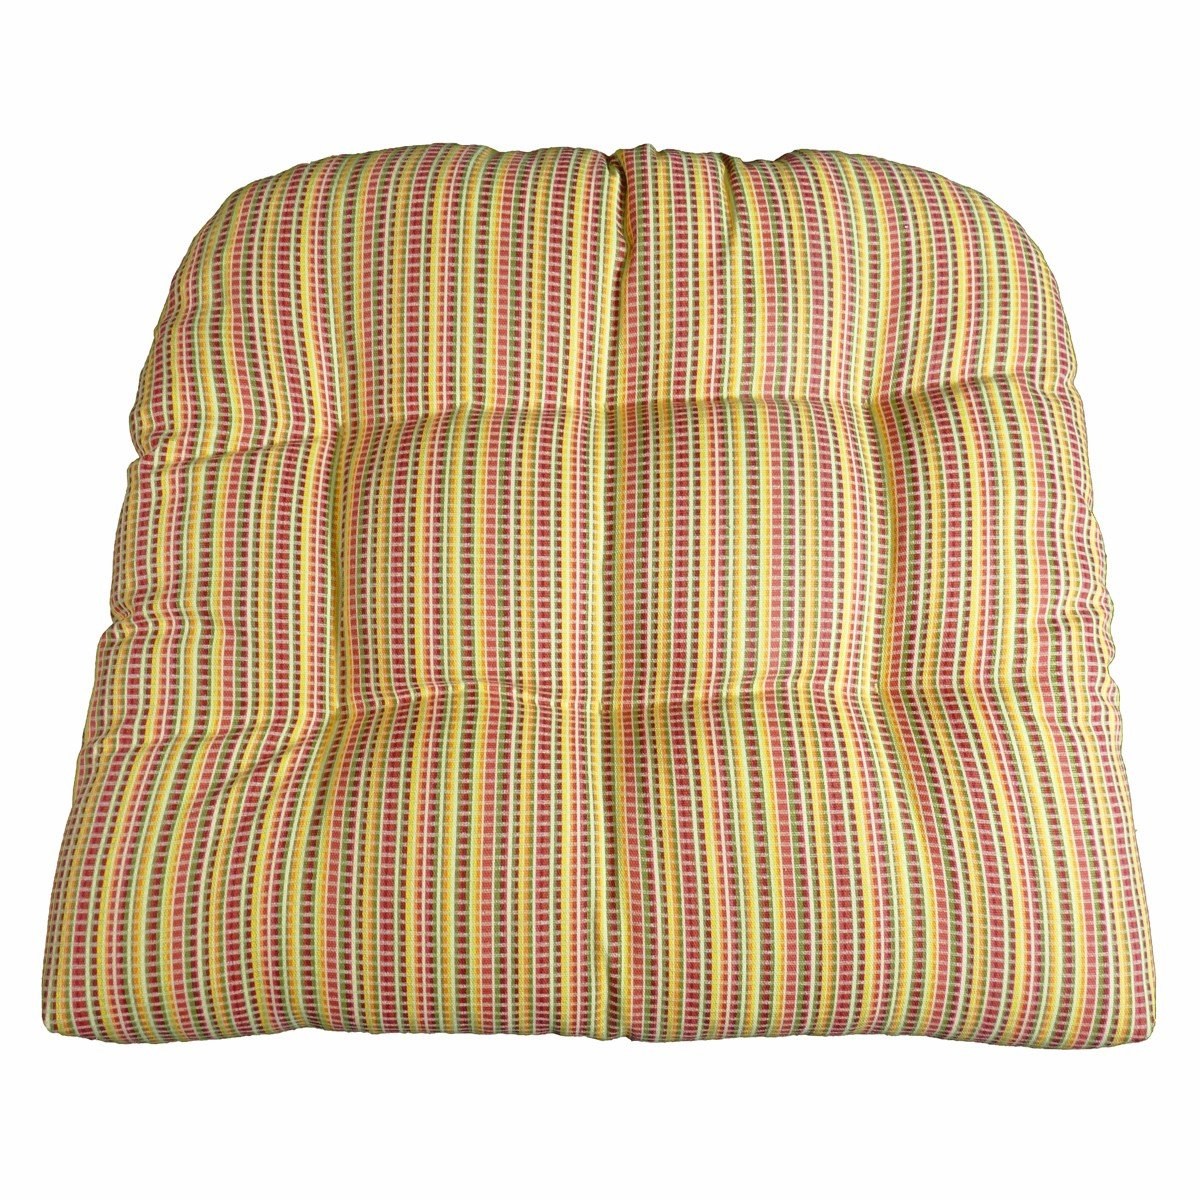 Amazoncom Outdoor Furniture Replacement Cushions Atwood Micro